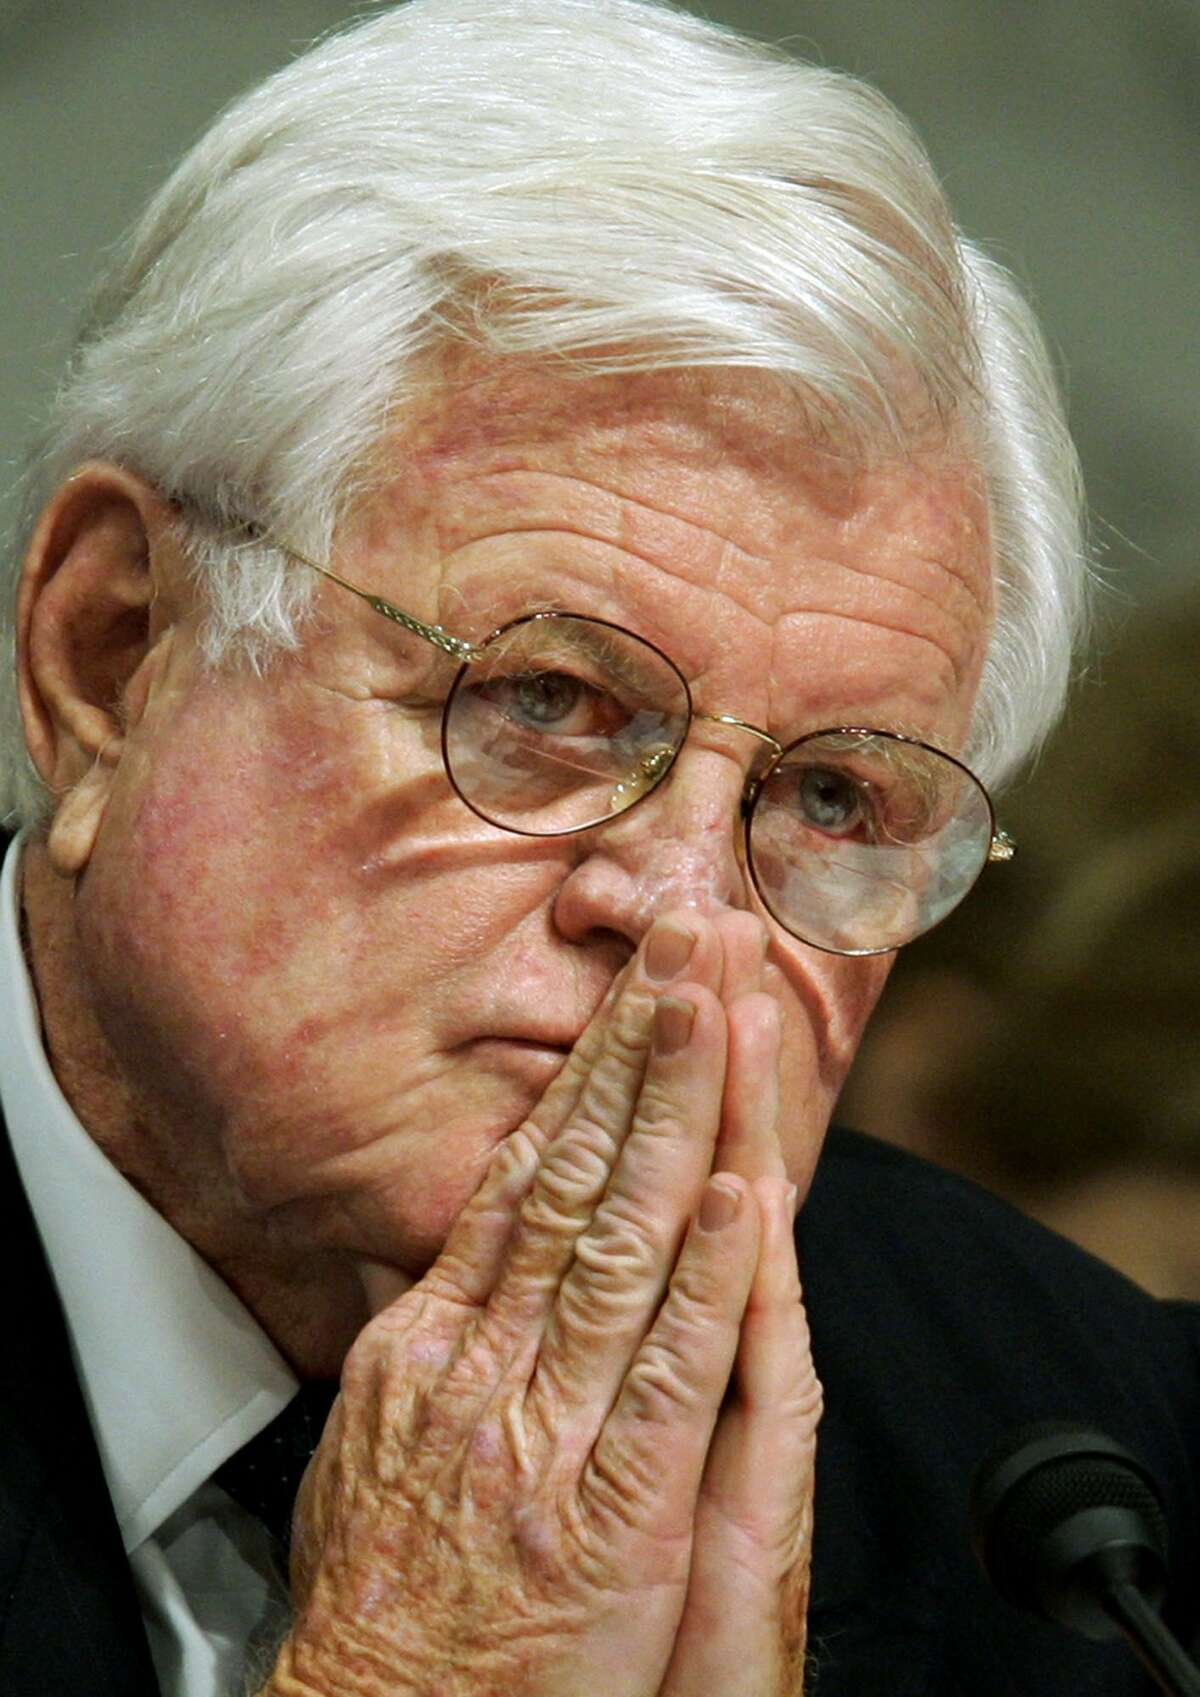 In this Sept. 15, 2005 photo, Sen. Edward Kennedy, D-Mass., a member of the Senate Judiciary Committee member, listens intently during a confirmation hearing, in Washington.